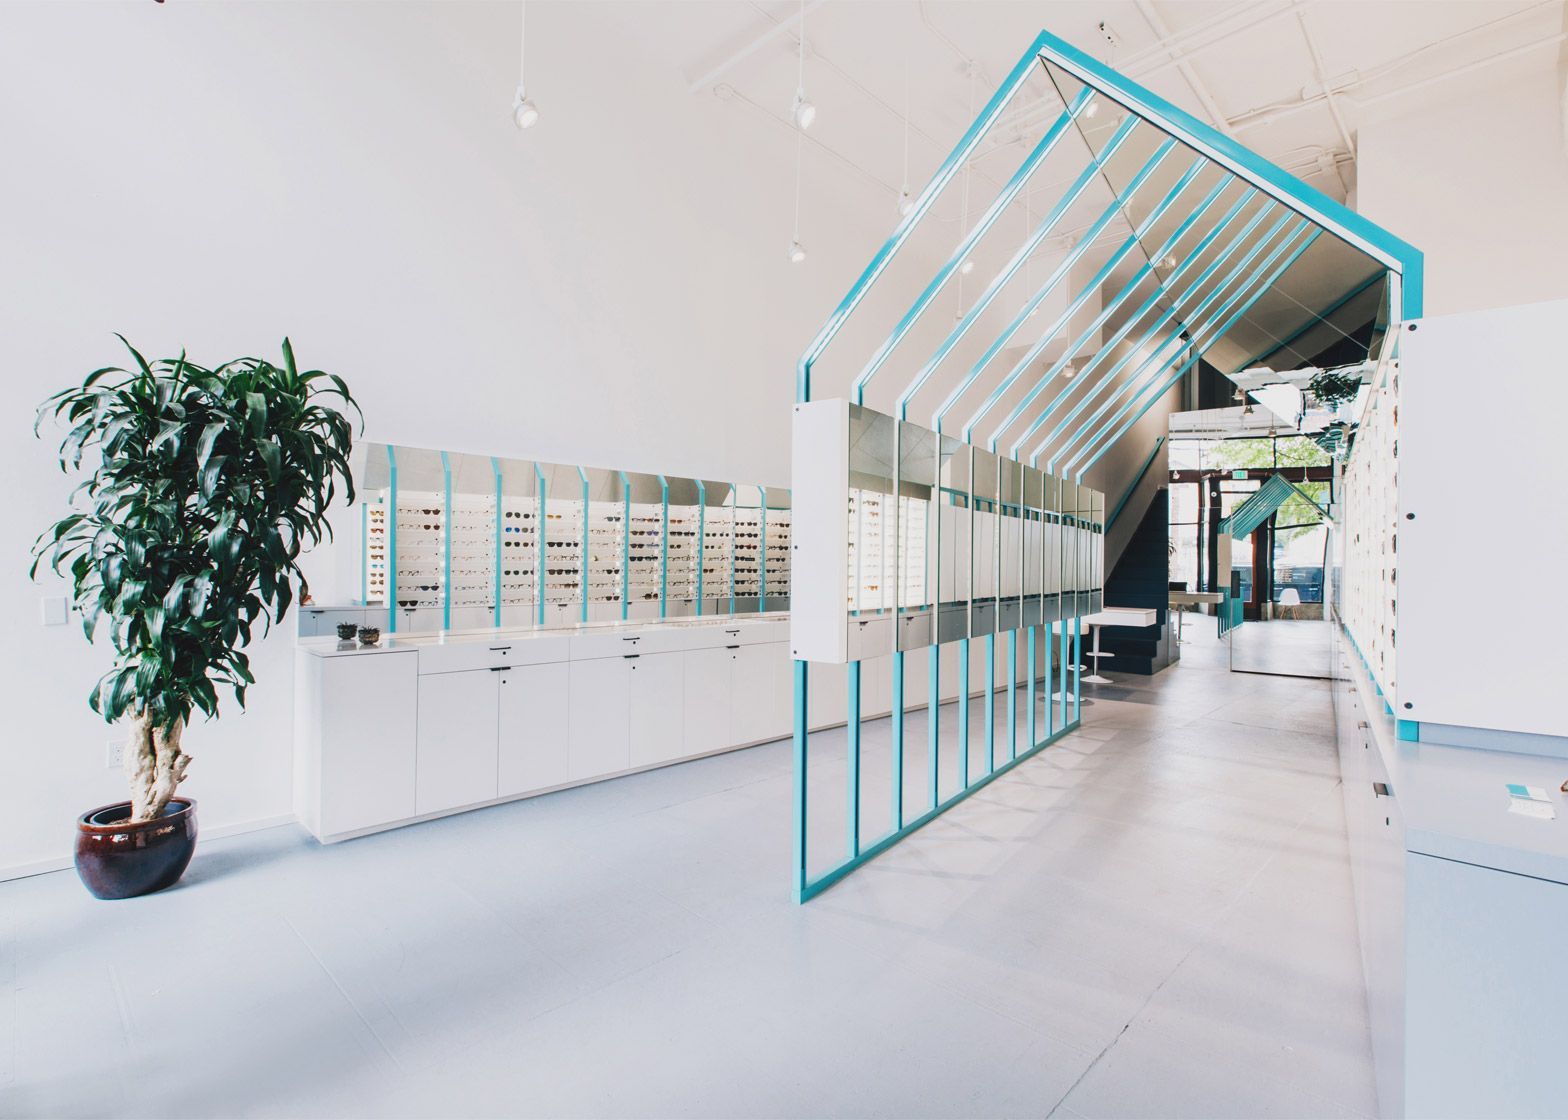 Eyeglasses are displayed within a steel-framed enclosure that resembles a house in this Seattle eyewear shop by local firm Best Practice Architecture.